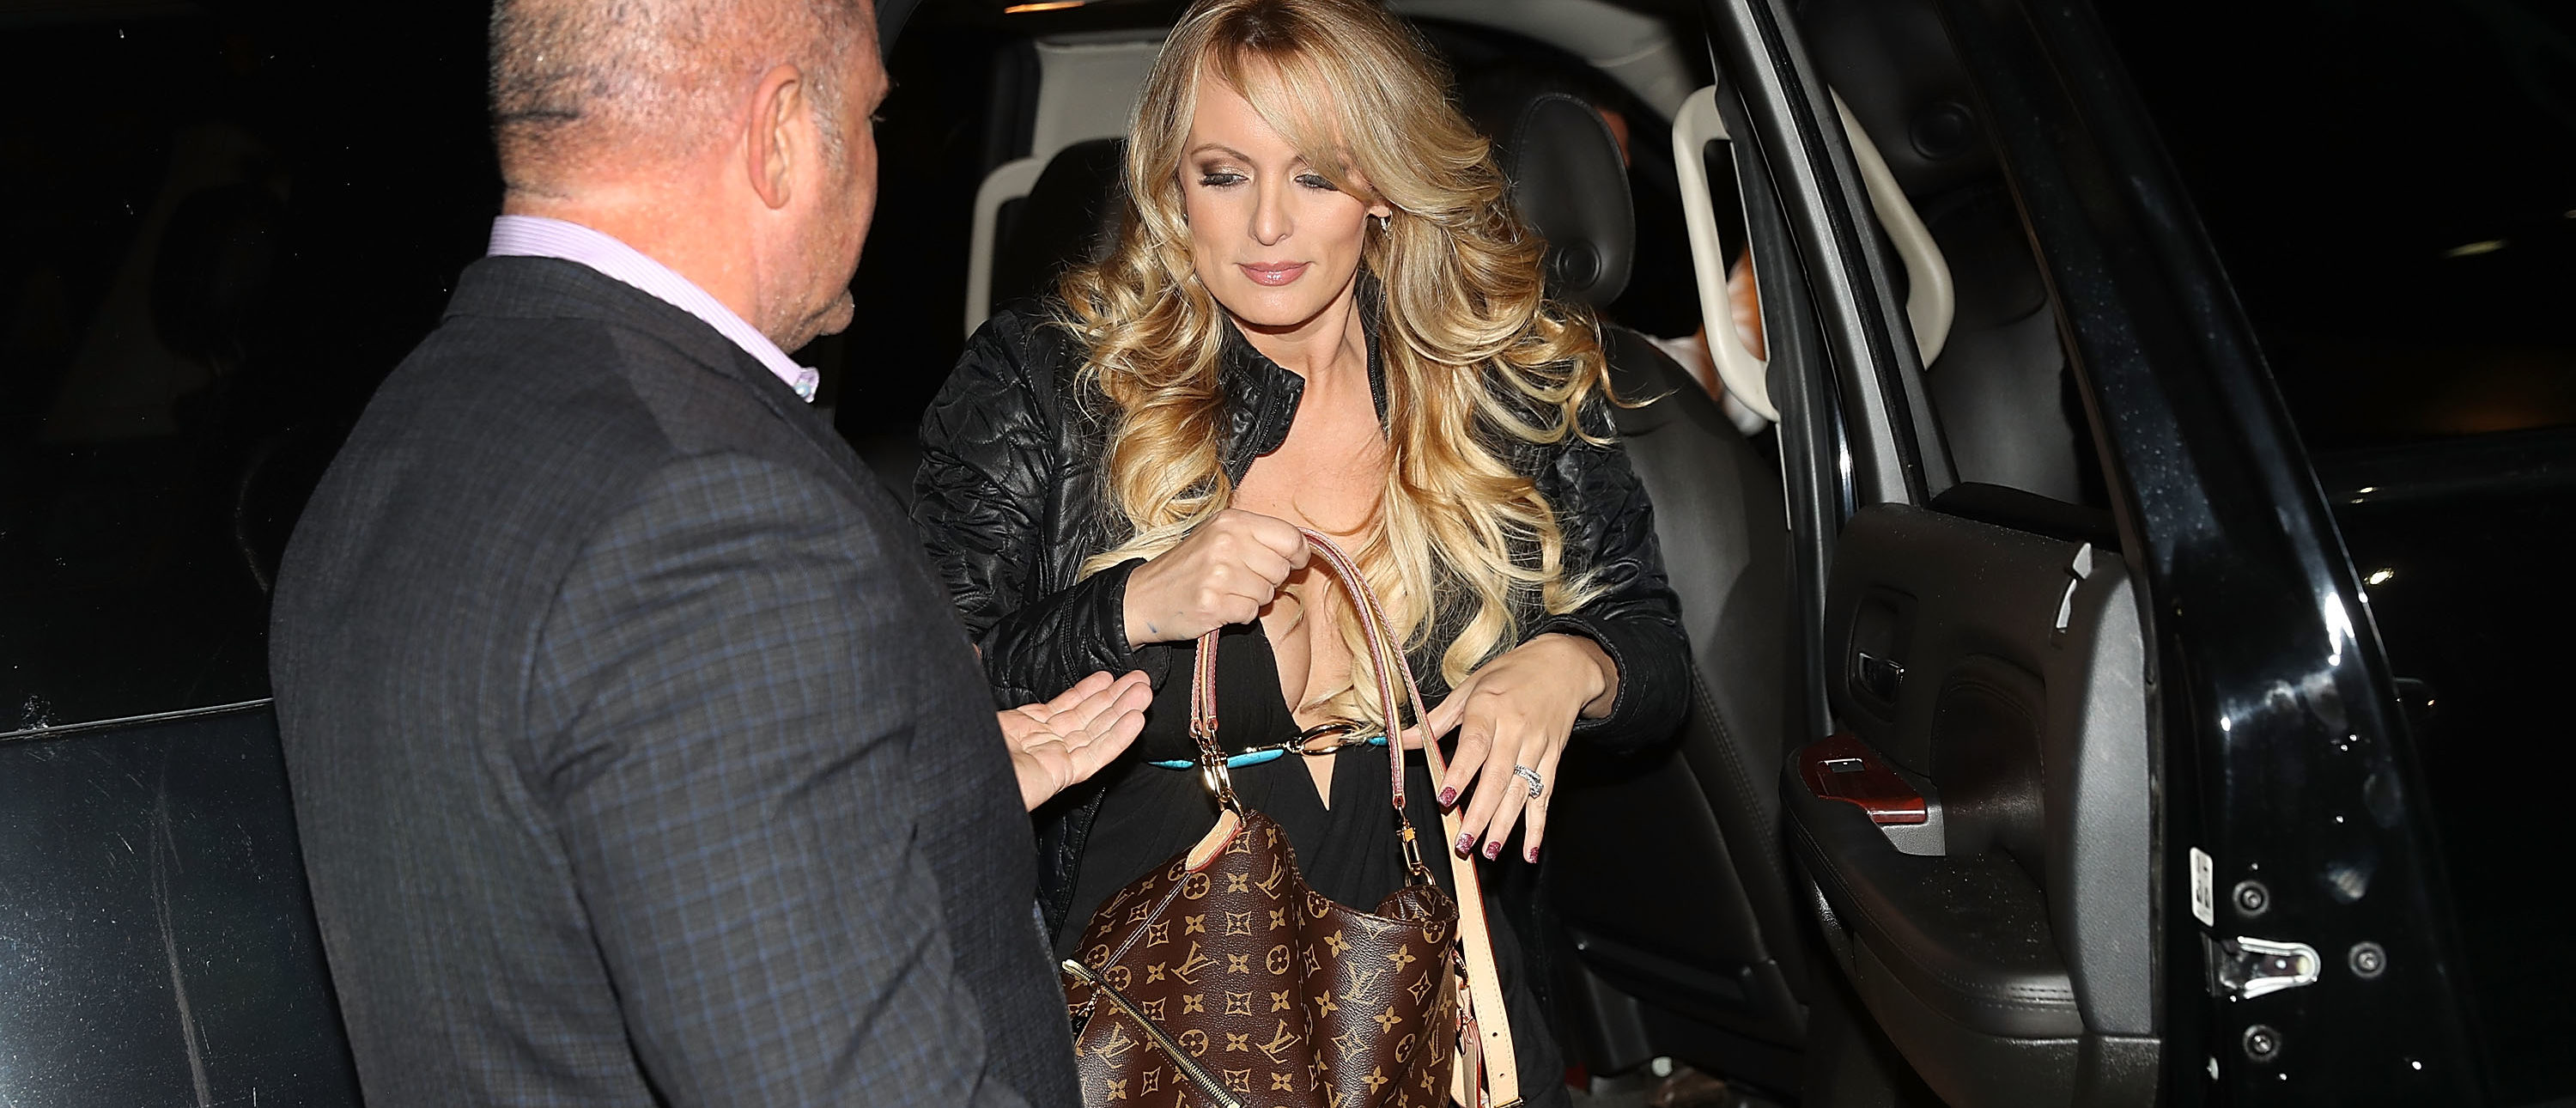 The actress Stephanie Clifford, who uses the stage name Stormy Daniels, arrives to perform at the Solid Gold Fort Lauderdale strip club on March 9, 2018 in Pompano Beach, Florida. (Photo by Joe Raedle/Getty Images)